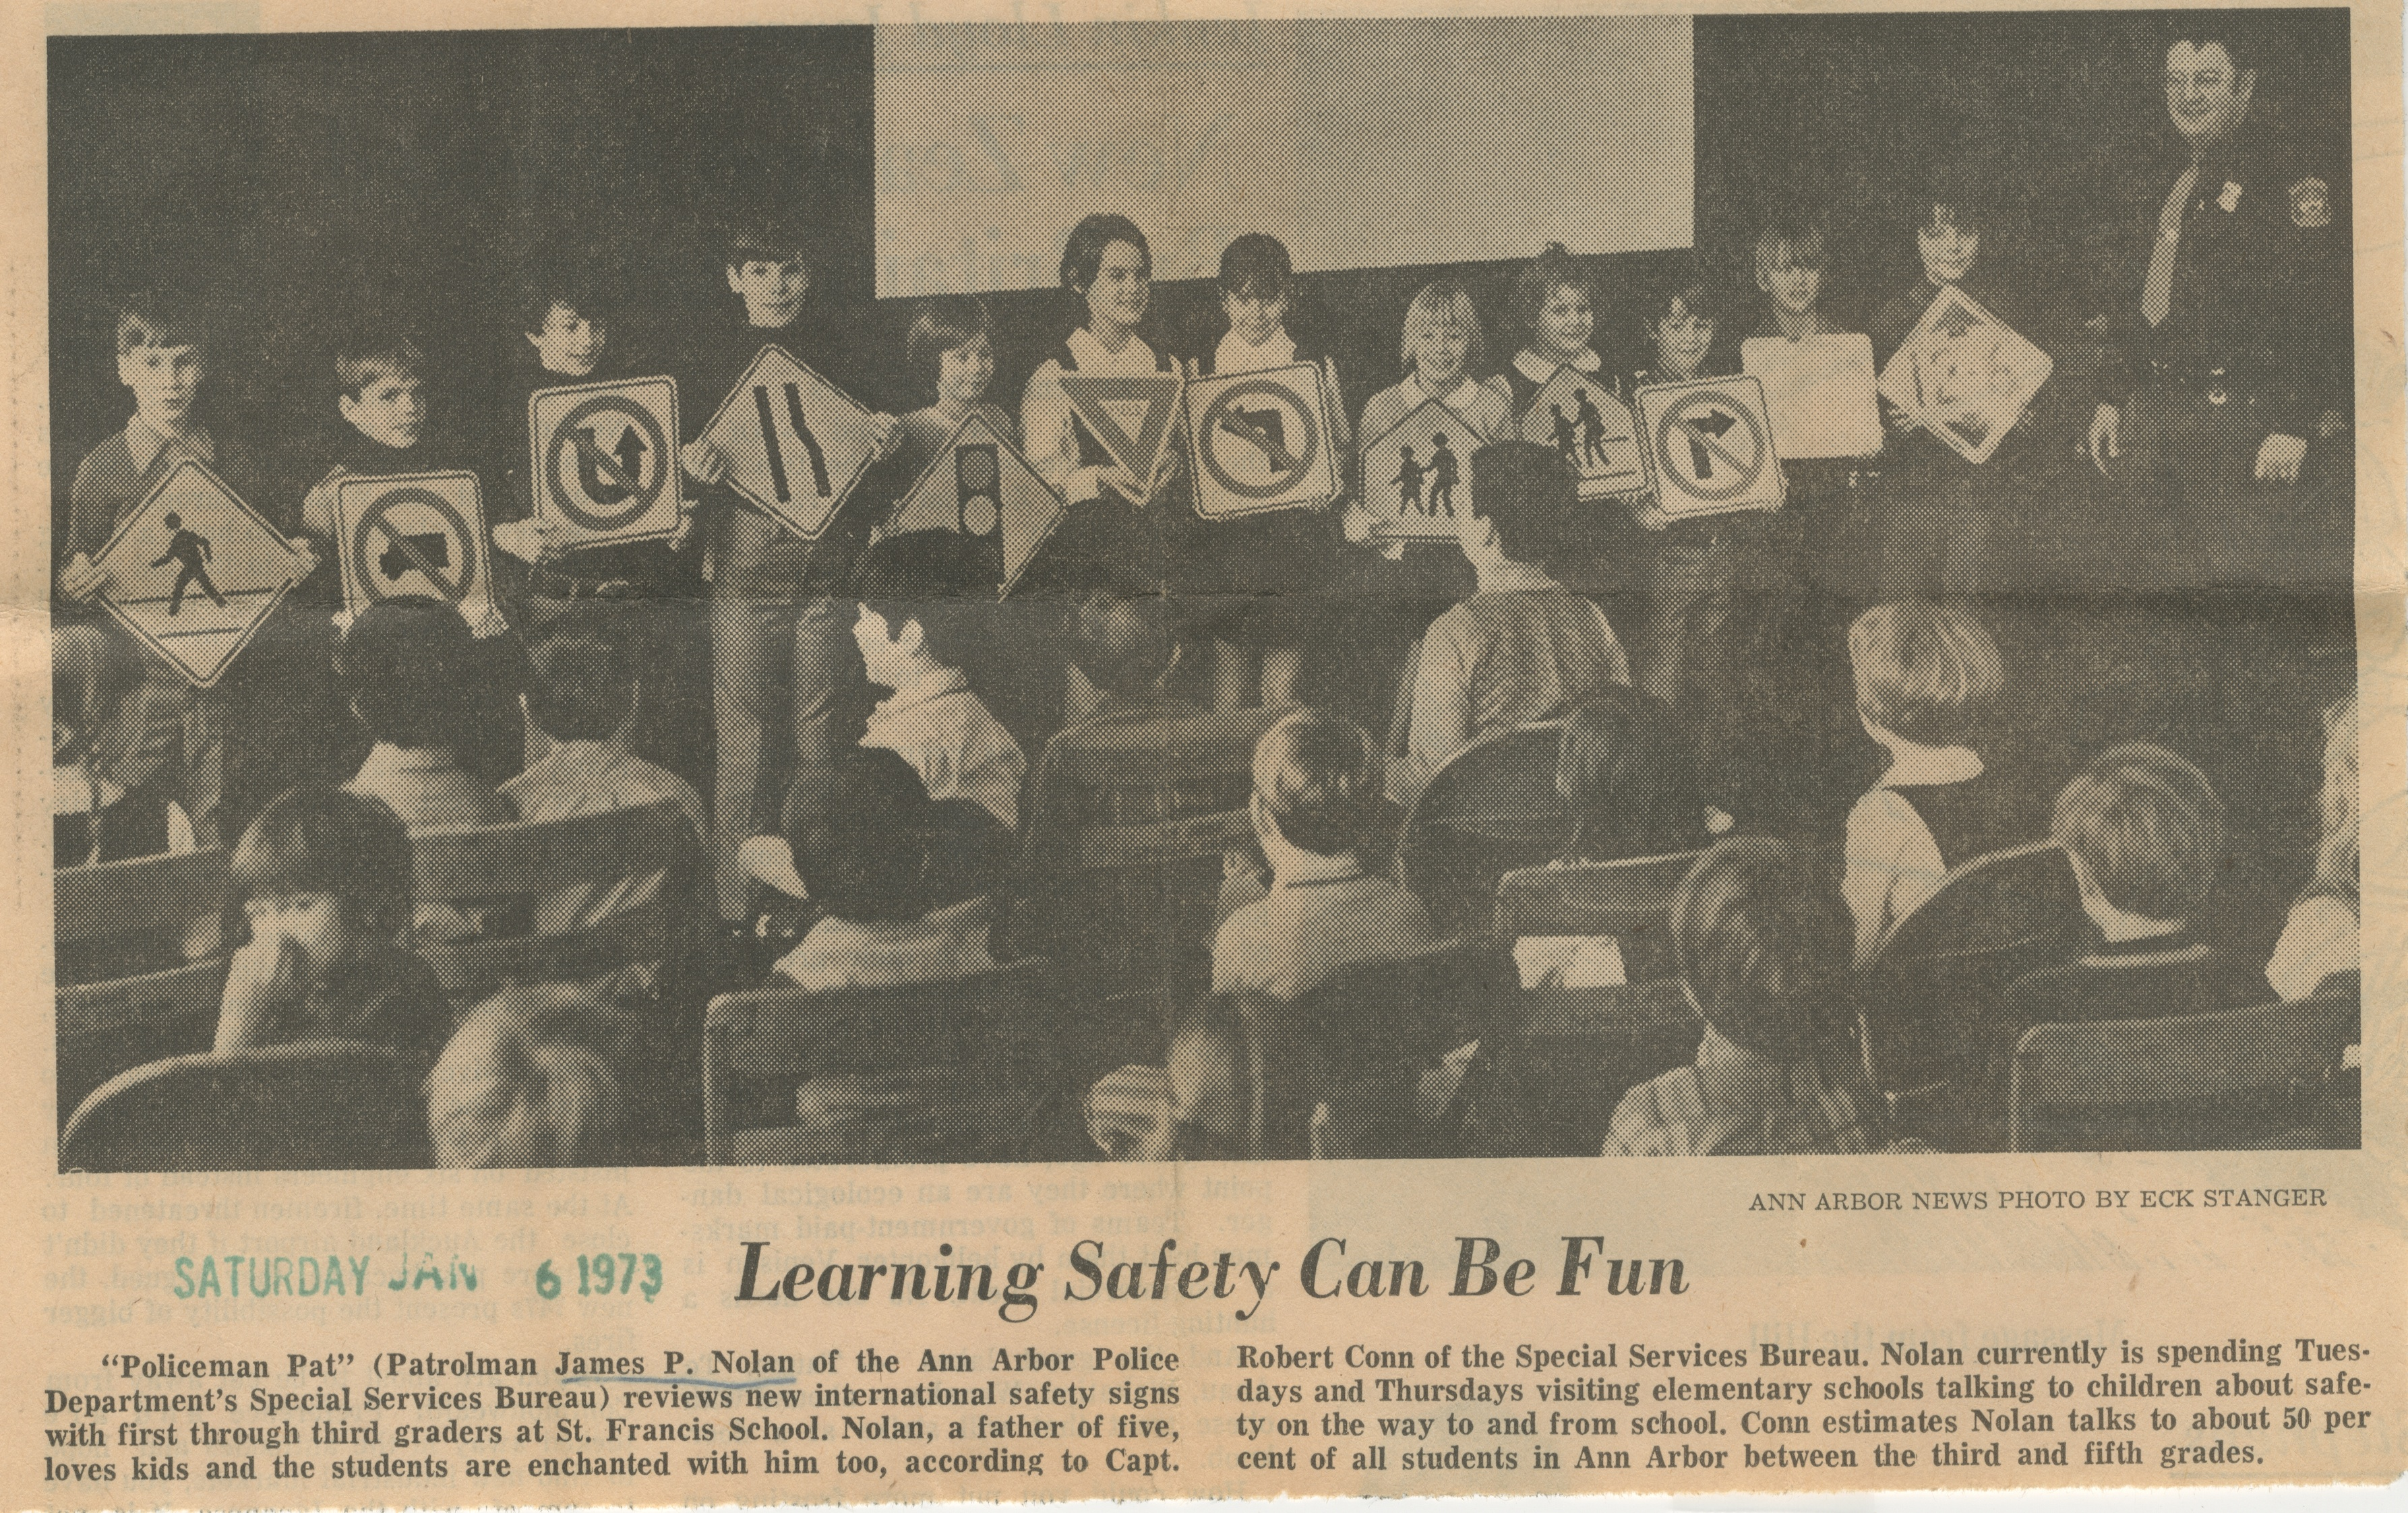 Learning Safety Can Be Fun image